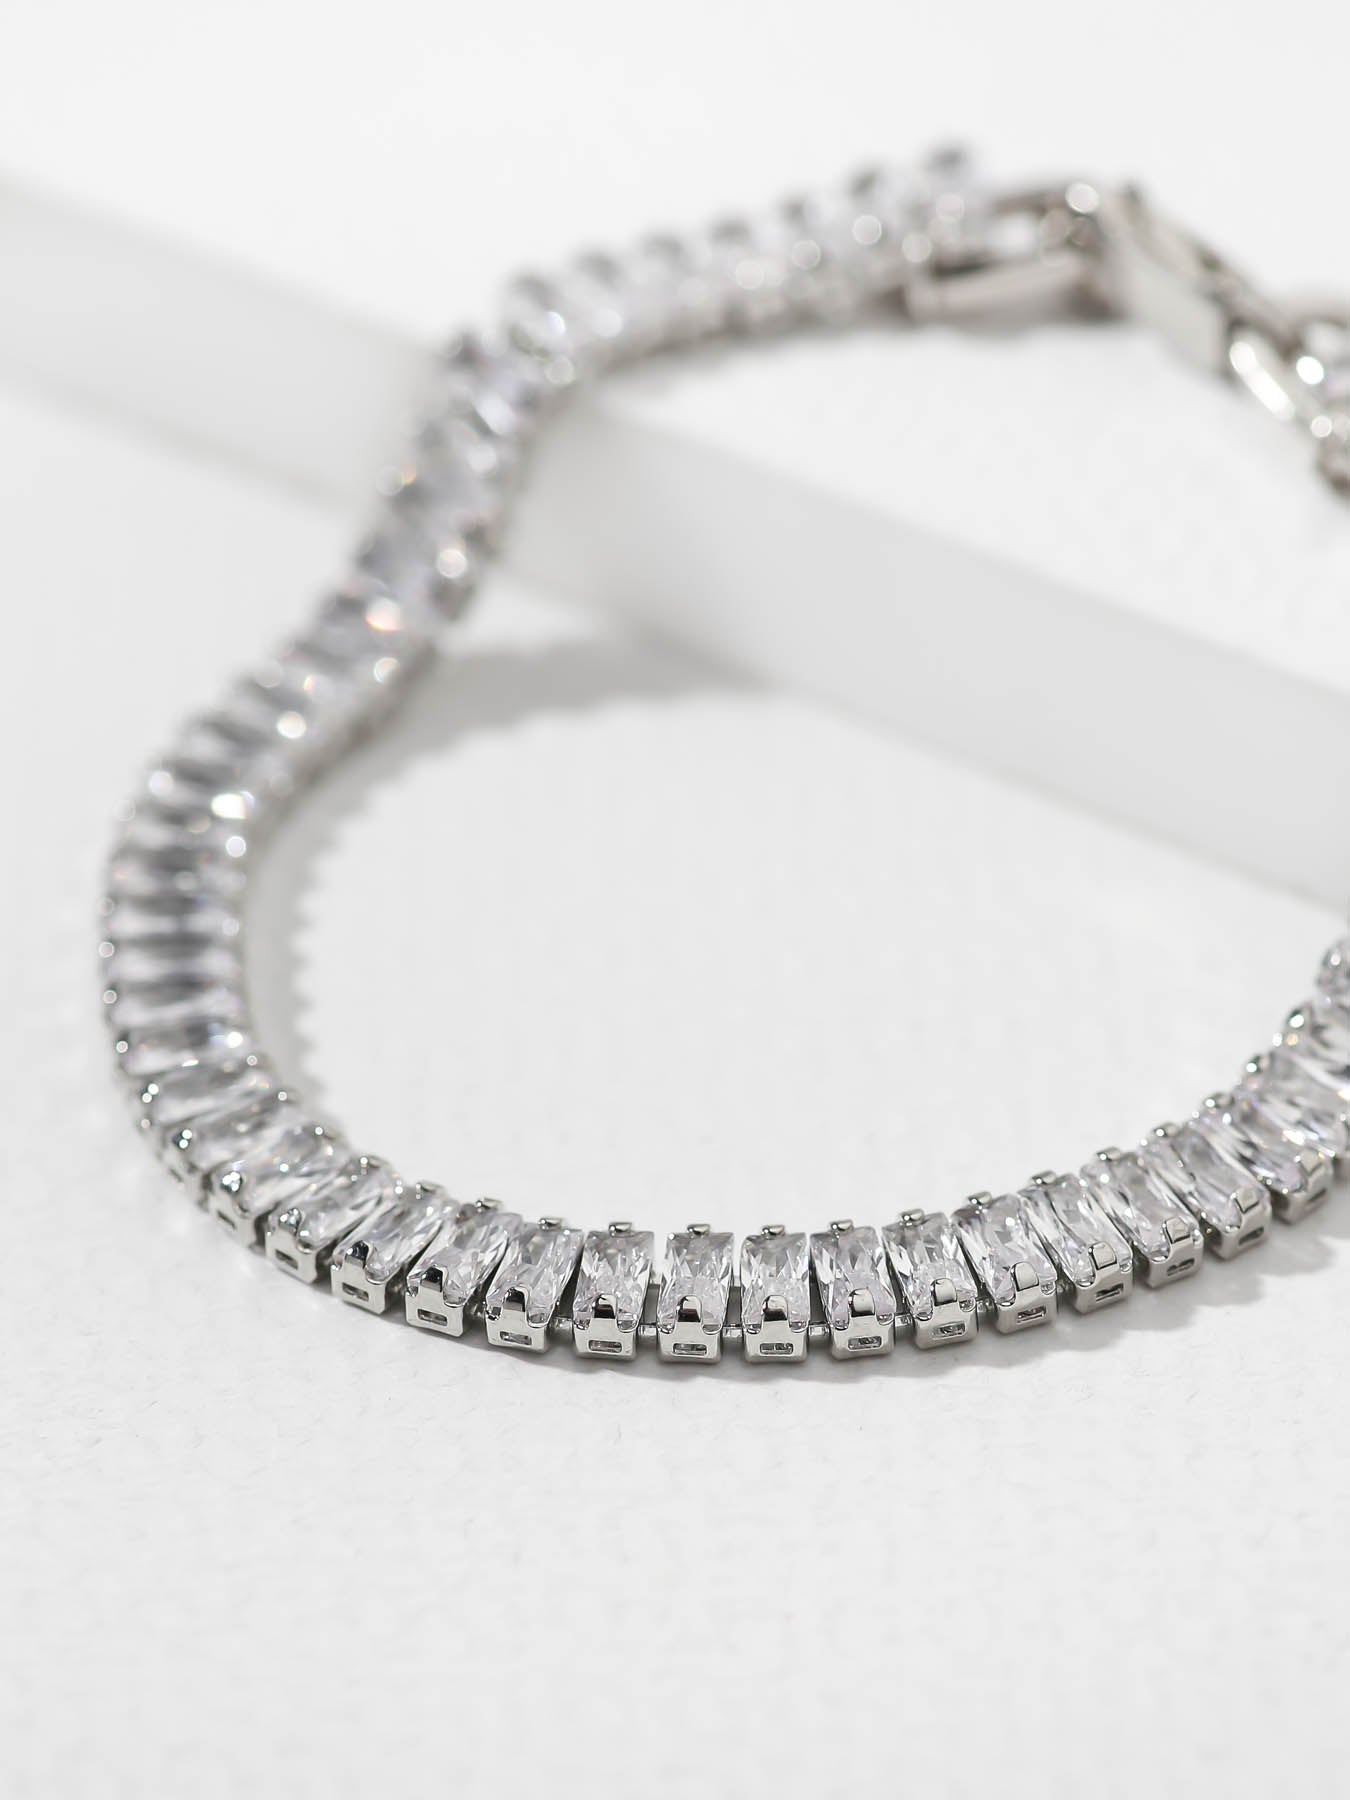 Sale Items SAMPLE: The Cindy Bracelet - Silver Vanessa Mooney